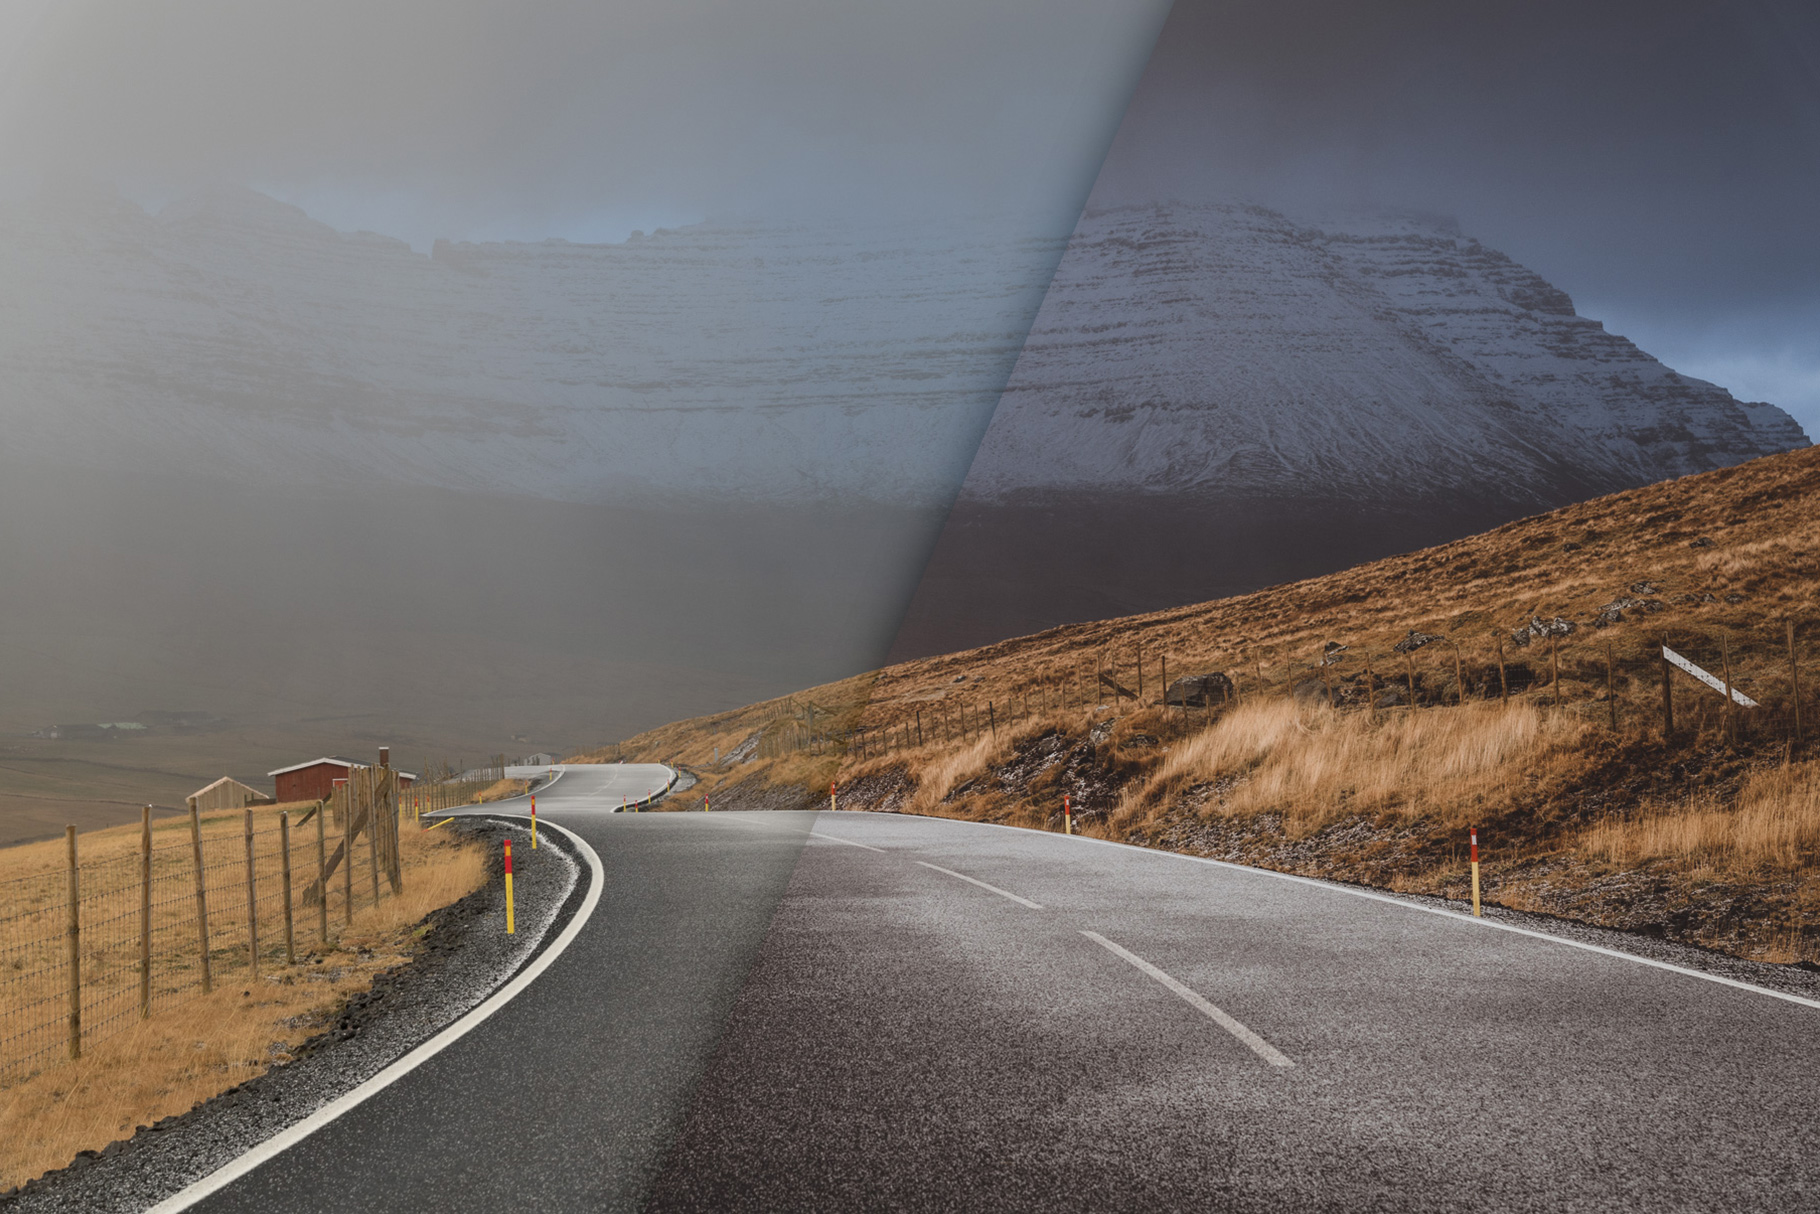 Lightroom Presets for Dark and Moody Landscapes example image 4